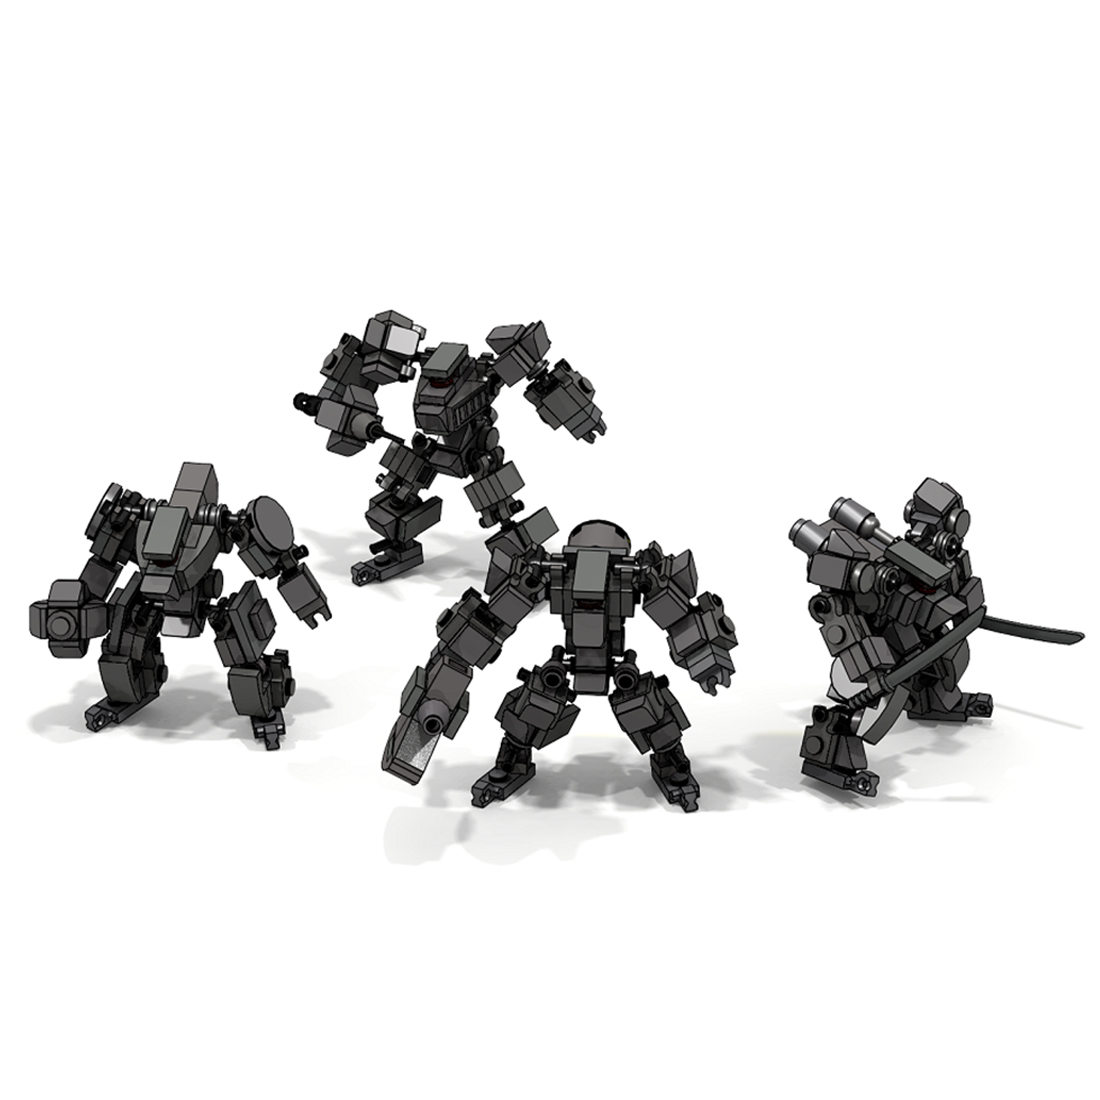 Moc Mini Mecha Fighting Warfare Soldier Model Assembly Small Particle Building Blocks Educational Toy Set - Red 030-1